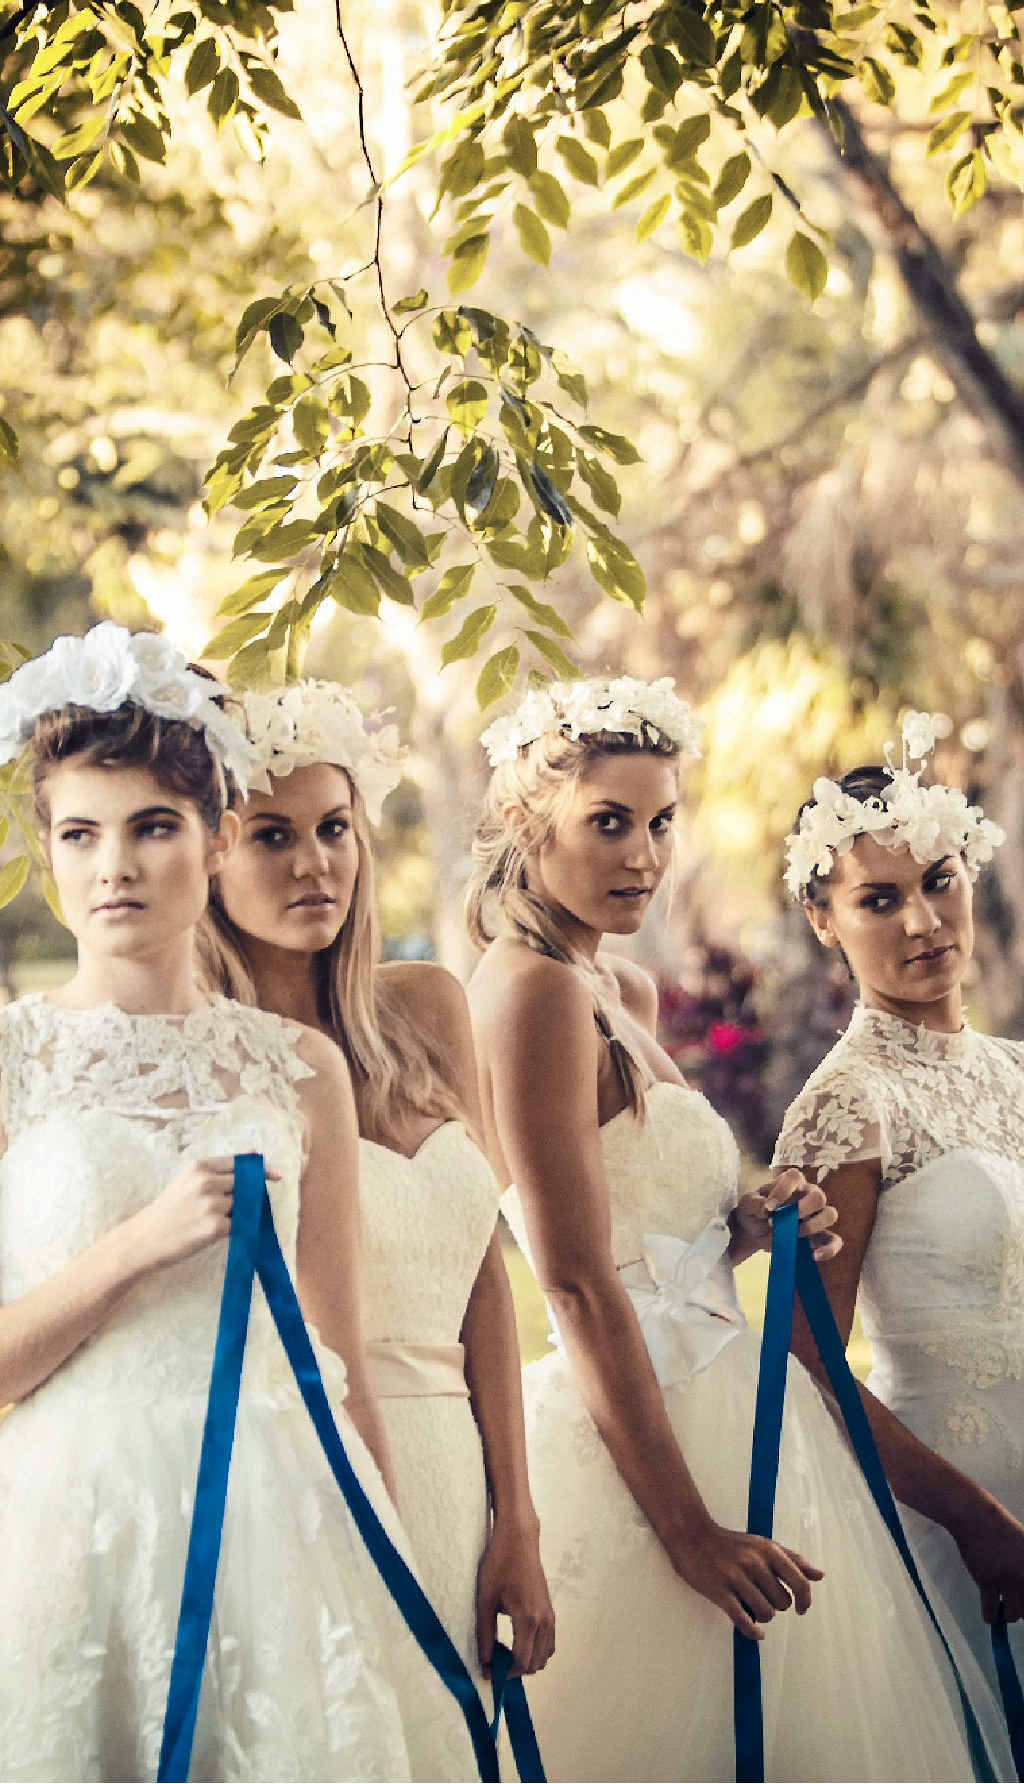 Mia loves the 1920s for brides with lace caps, long veils and bridesmaids with shorter gowns.